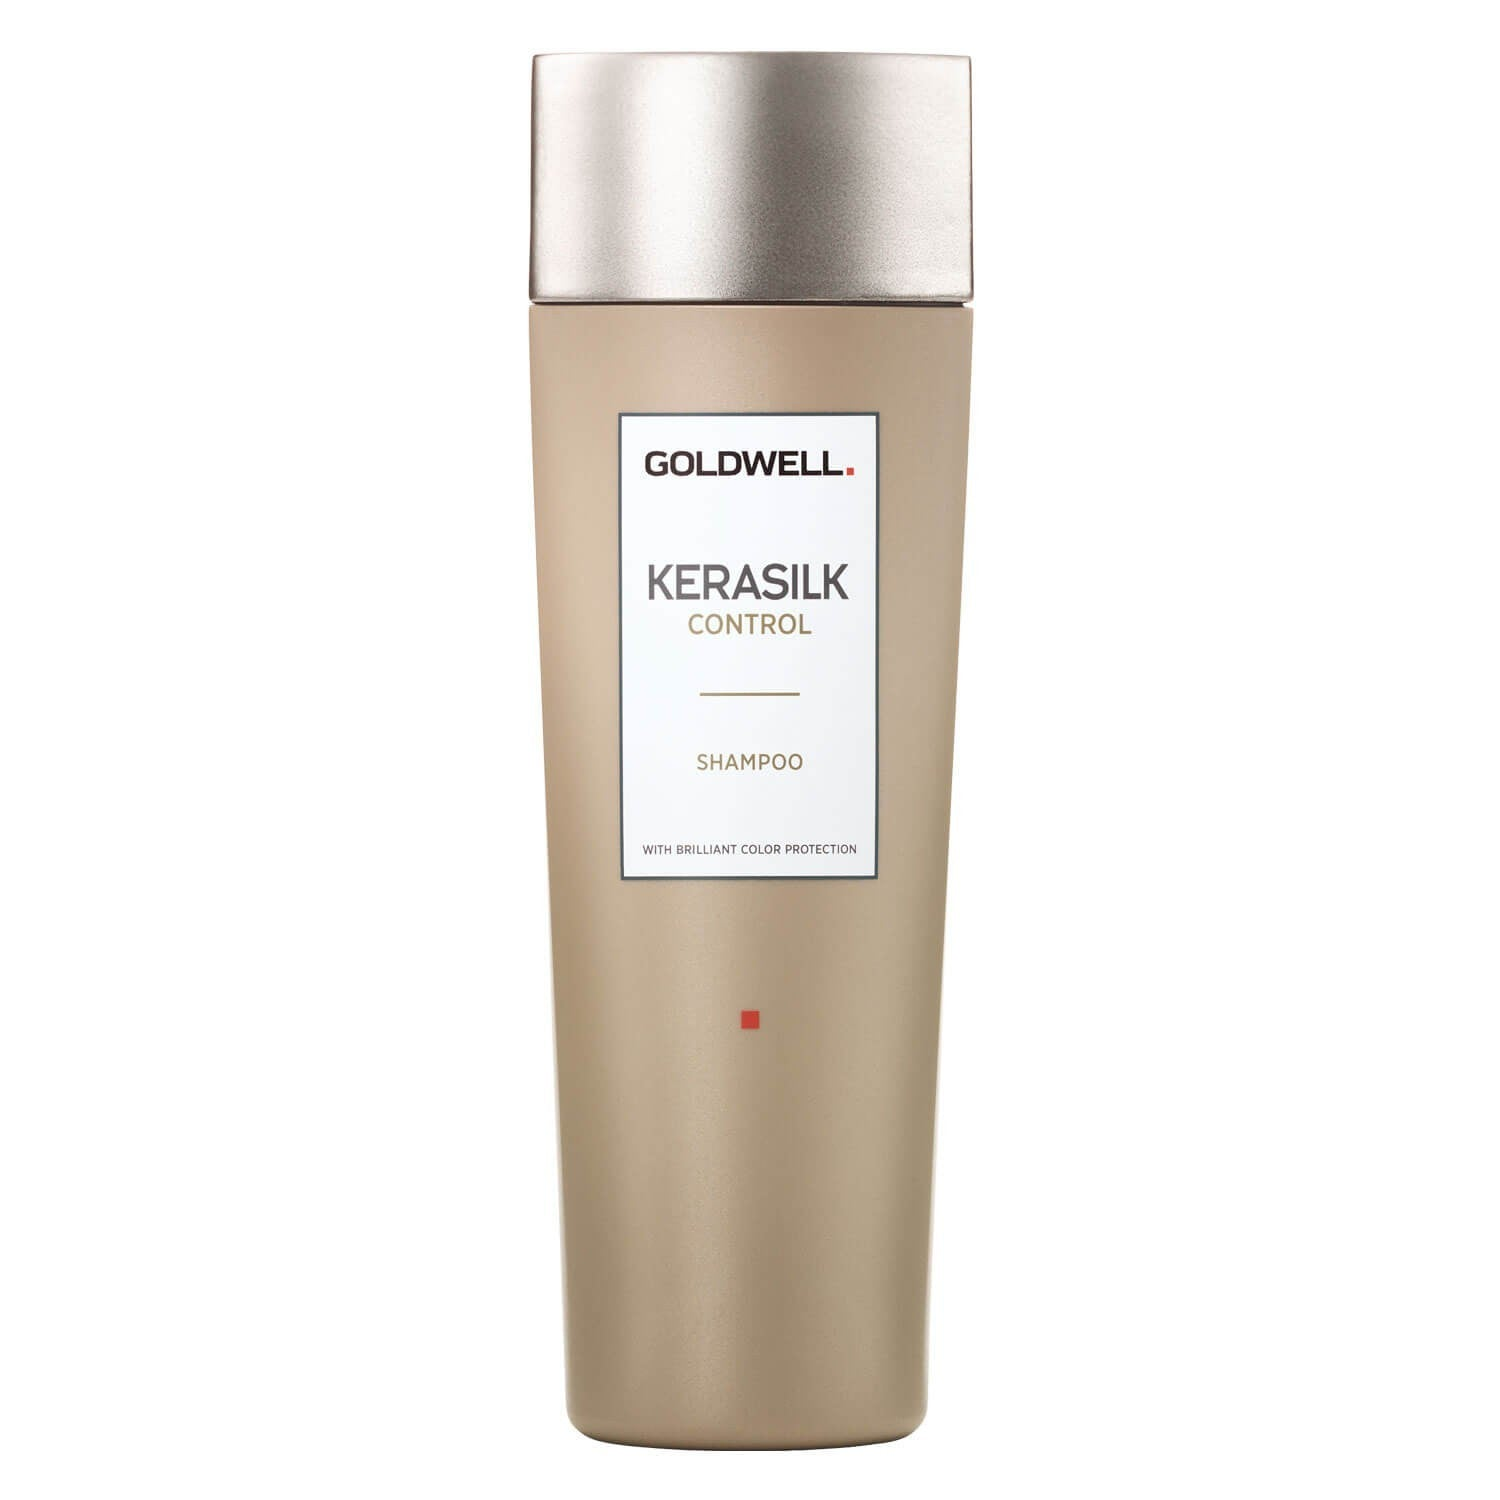 Kerasilk Control Shampoo 250ml - Crazy Beauty Shop